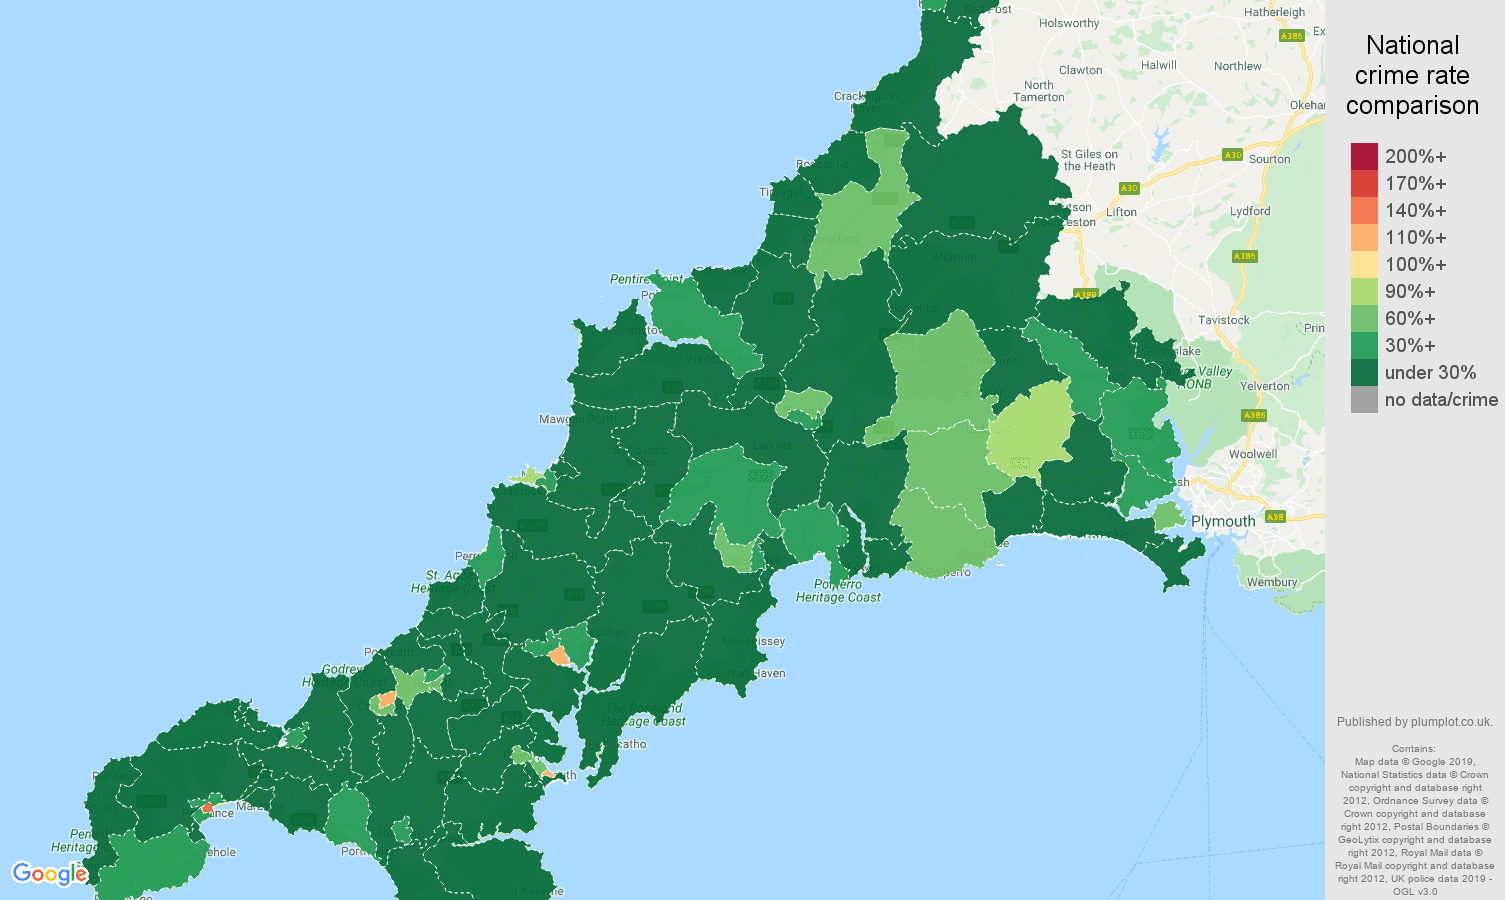 Cornwall public order crime rate comparison map